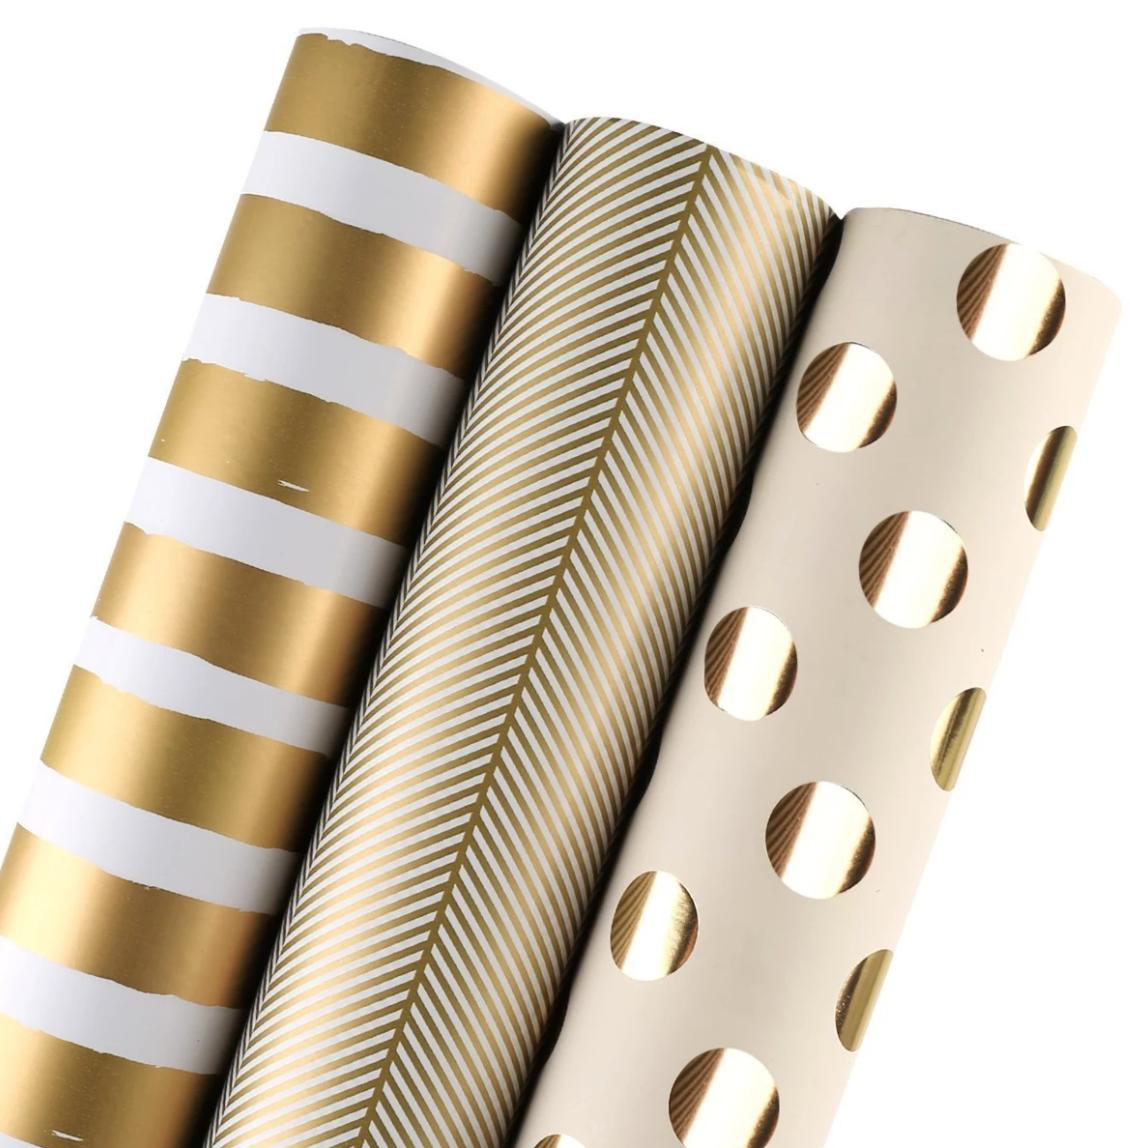 Gold foil wrapping paper